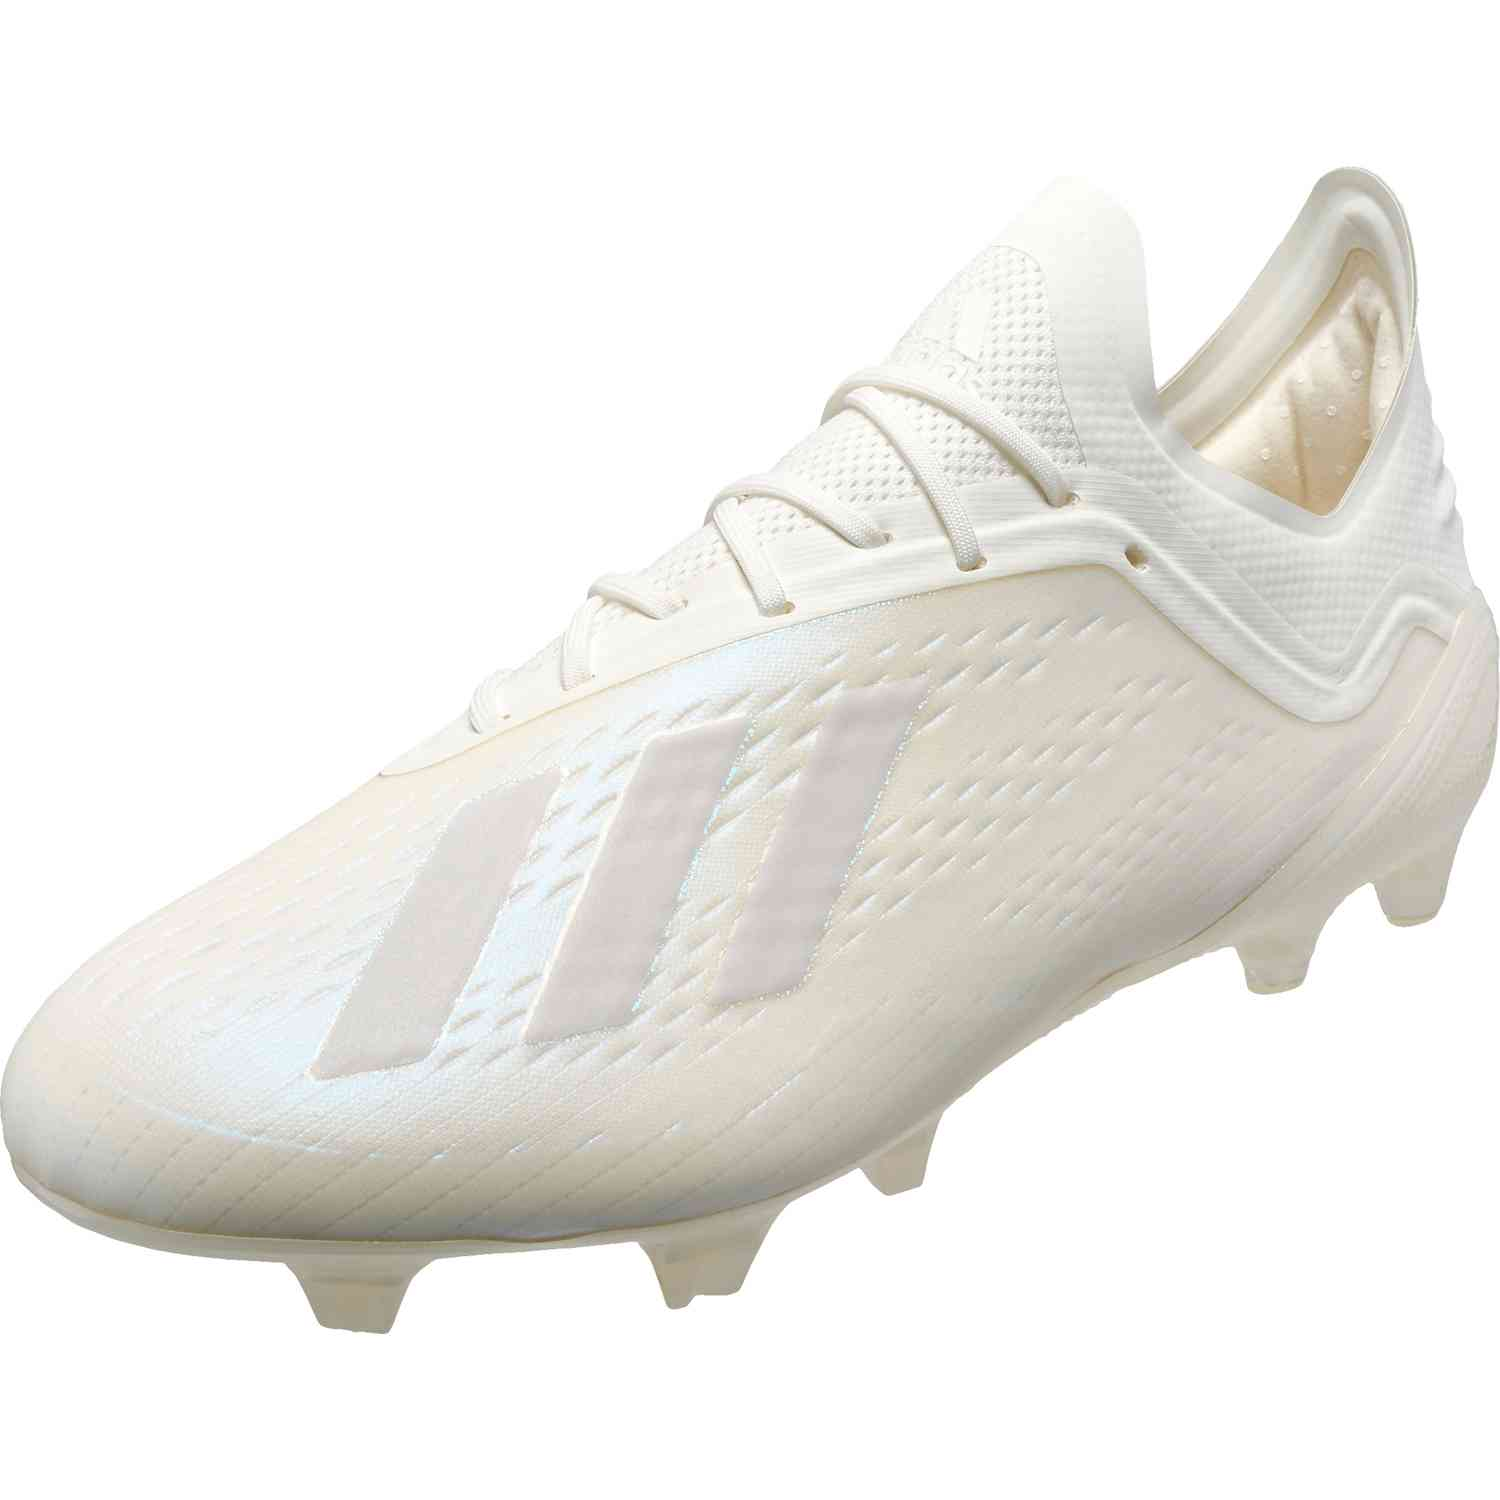 competitive price 0507b 77336 adidas X 18.1 FG – Off White Core Black